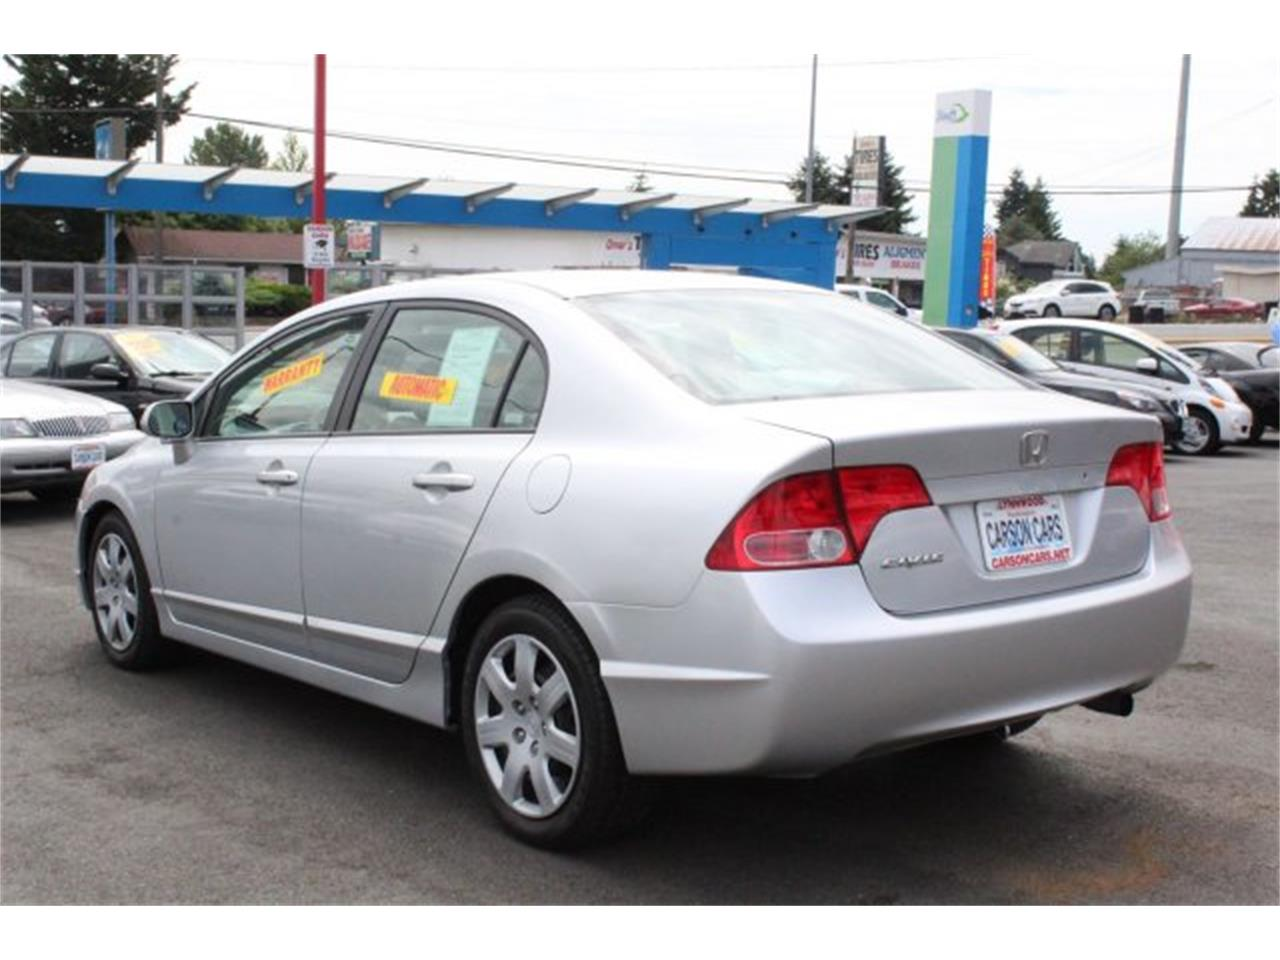 Large Picture of '07 Civic located in Lynnwood Washington - $7,995.00 - L2WF